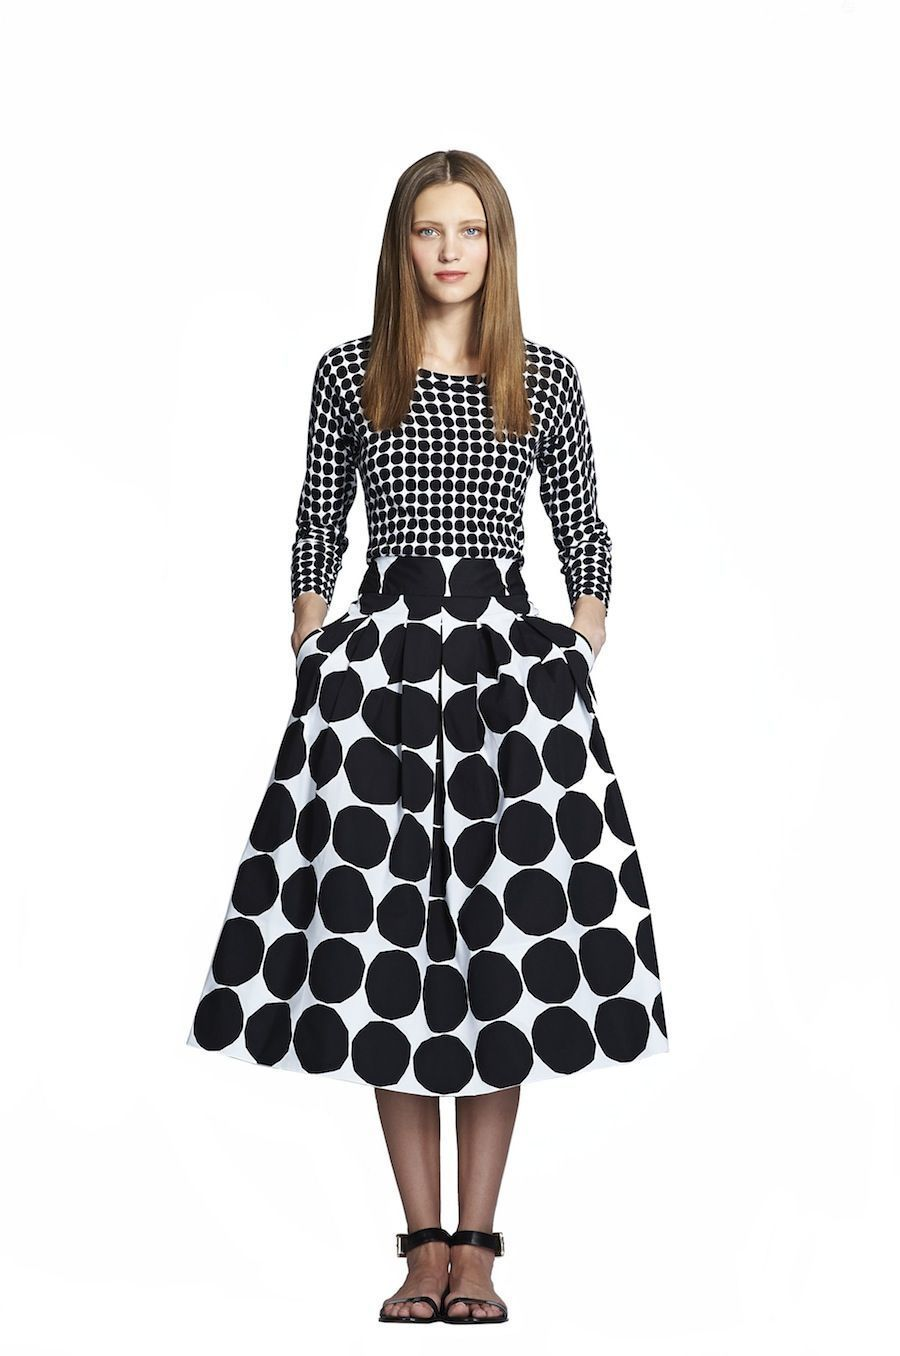 Banana Republic Marimekko Collection